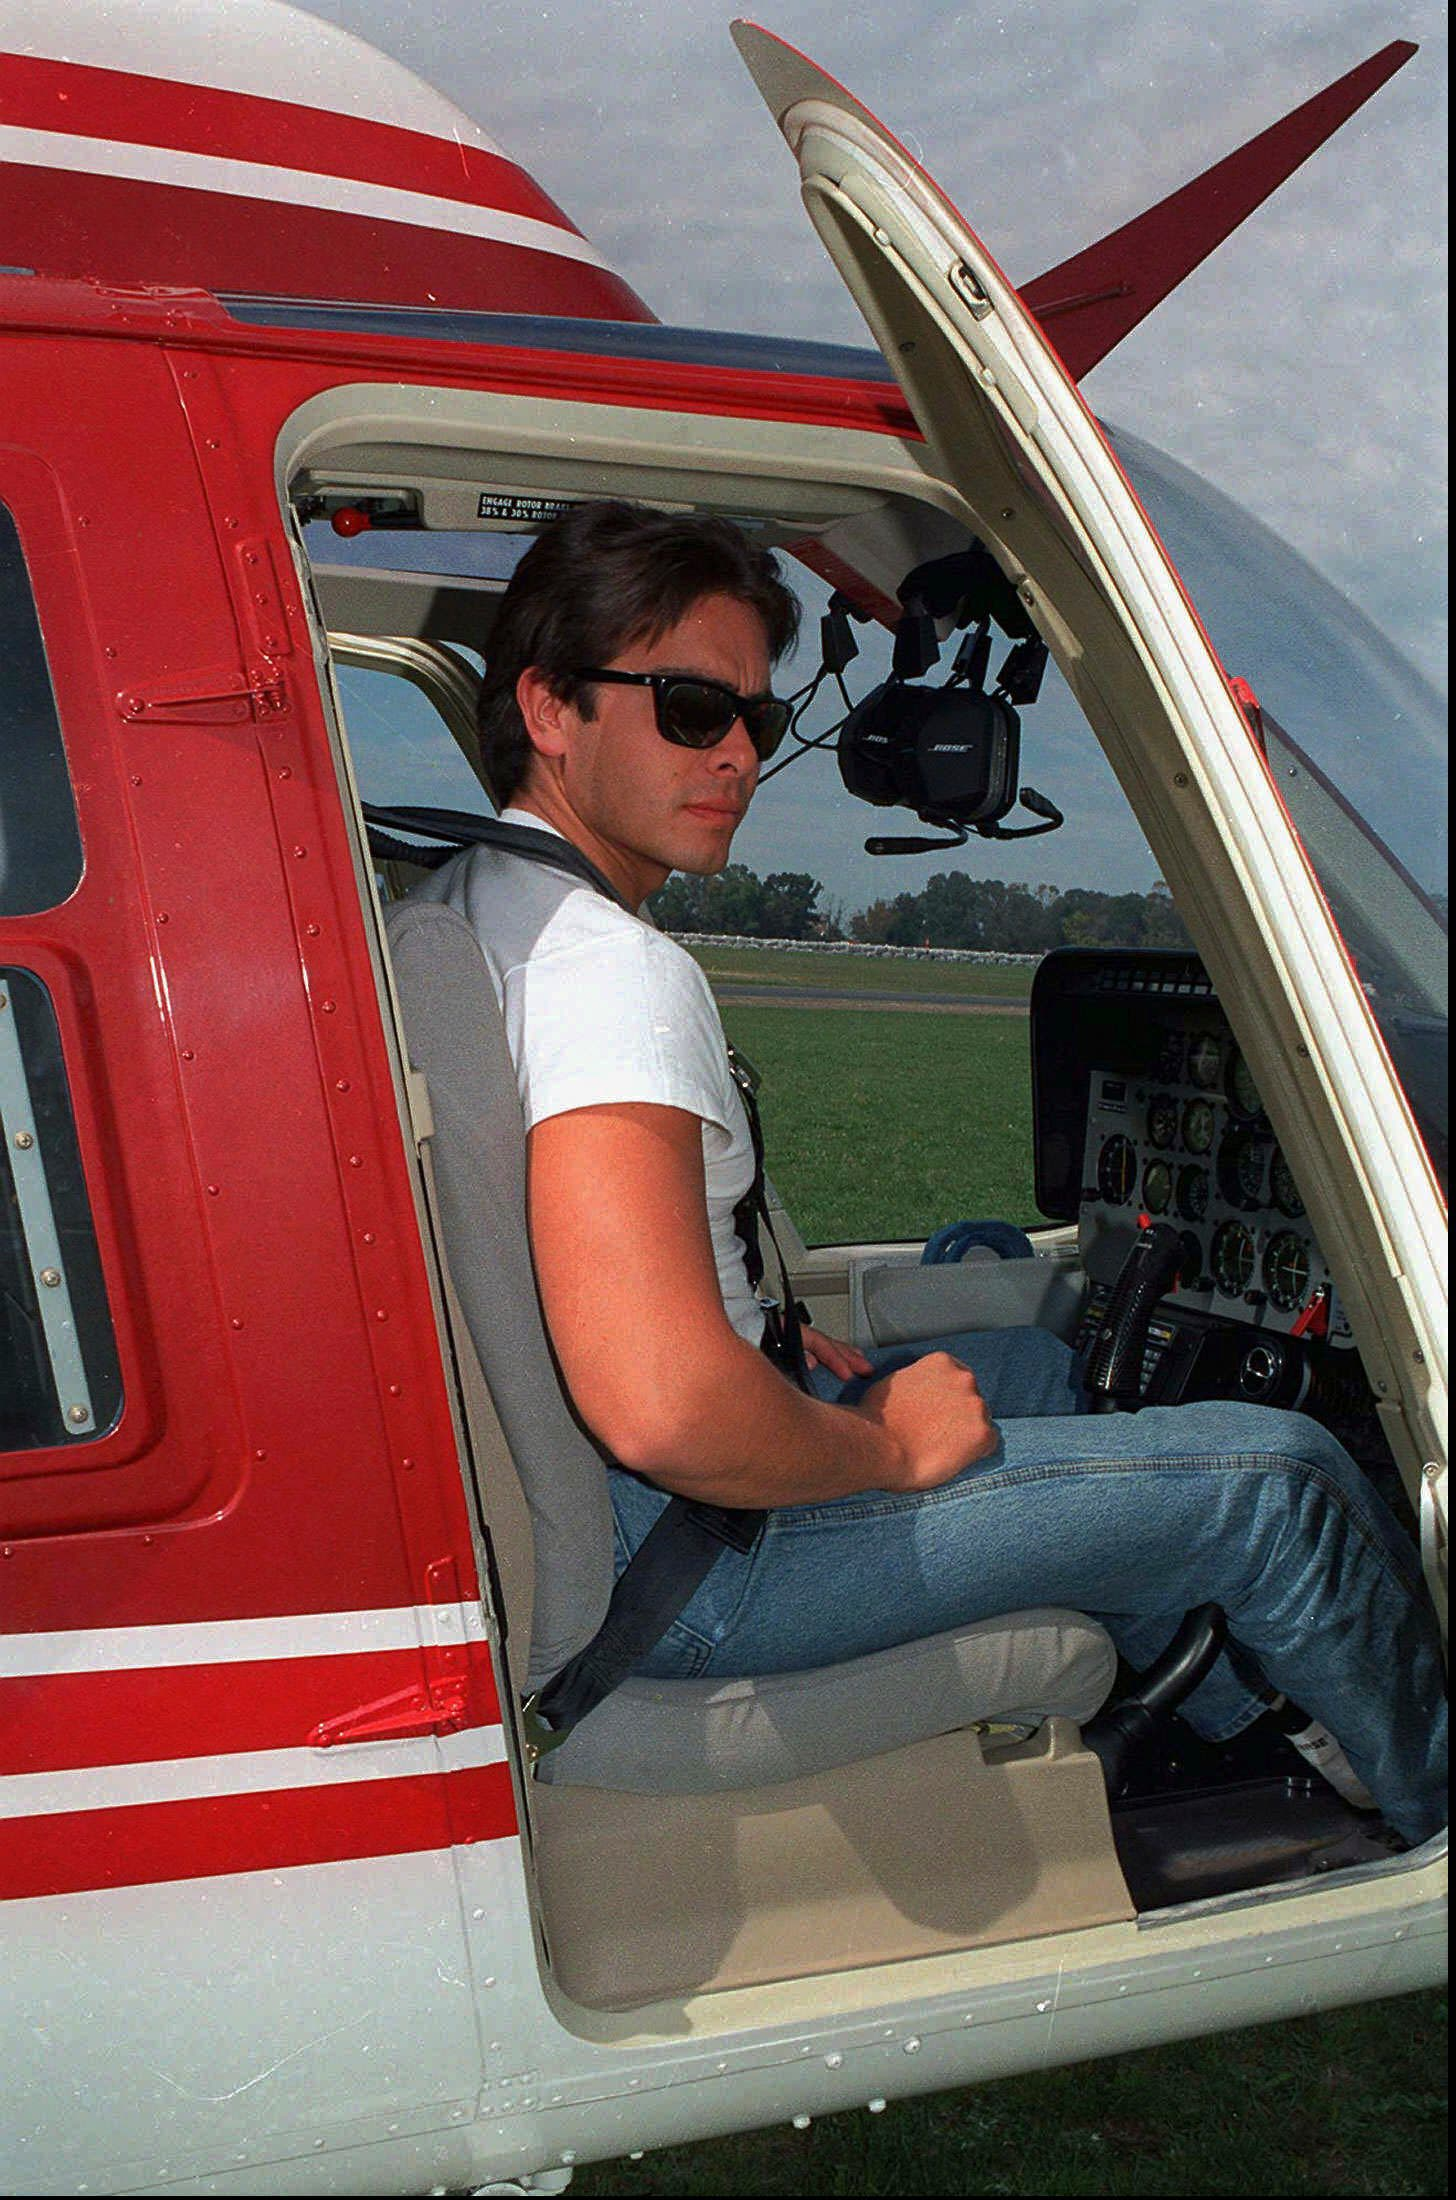 In this Jan. 1995 file photo, Carlos Facundo Menem, the son of Argentina's former President Carlos Menem, sits in a helicopter in an unknown location in Argentina. (AP)